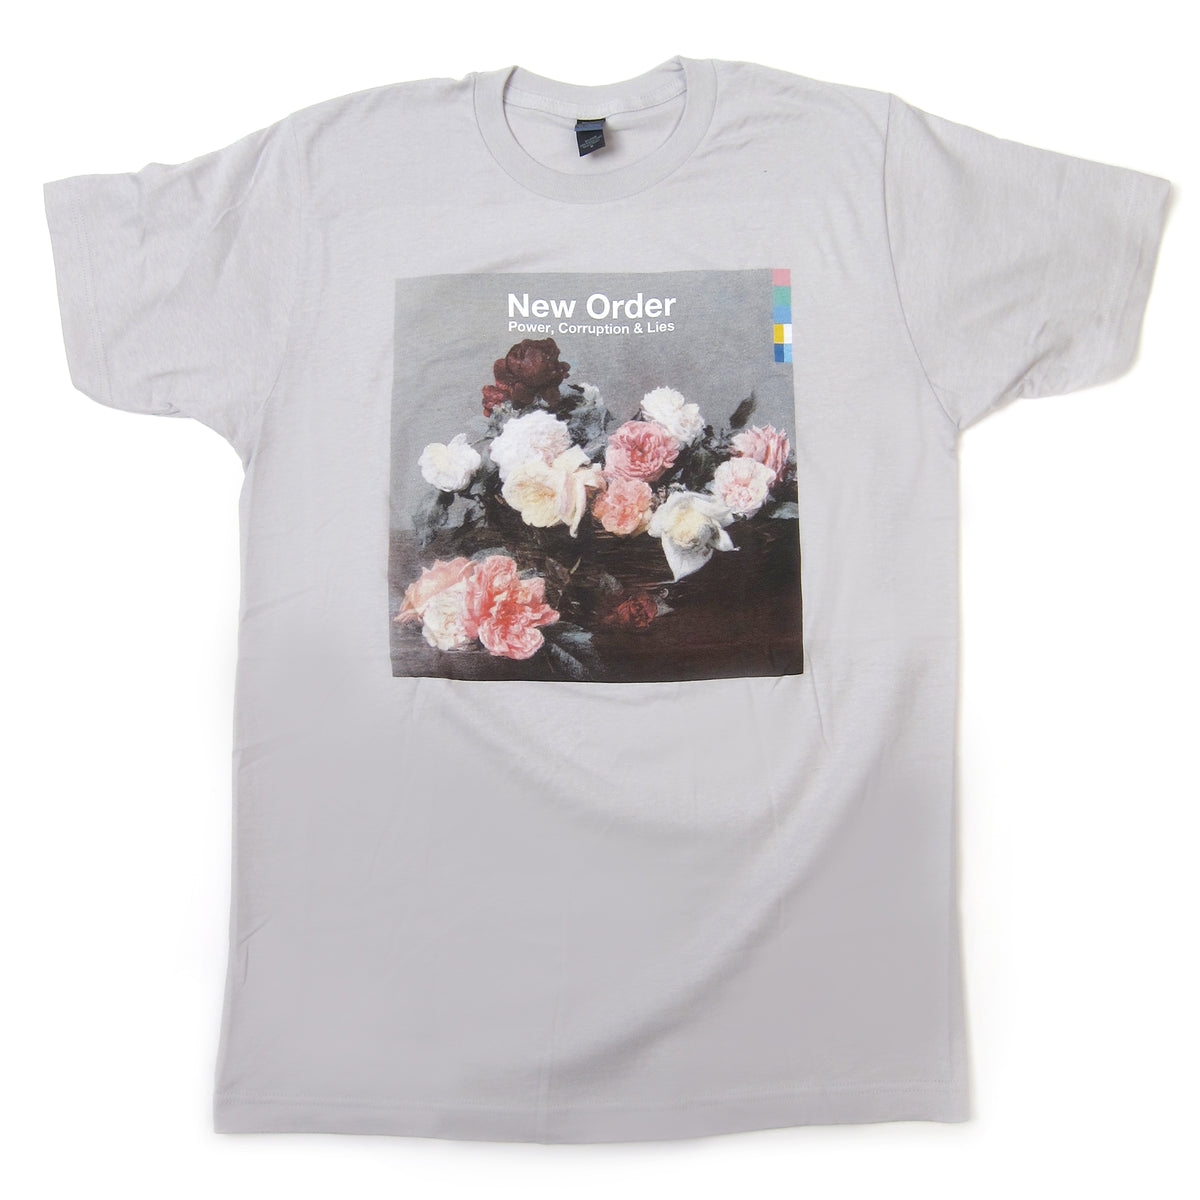 New Order: Power, Corruption & Lies Shirt - Silver